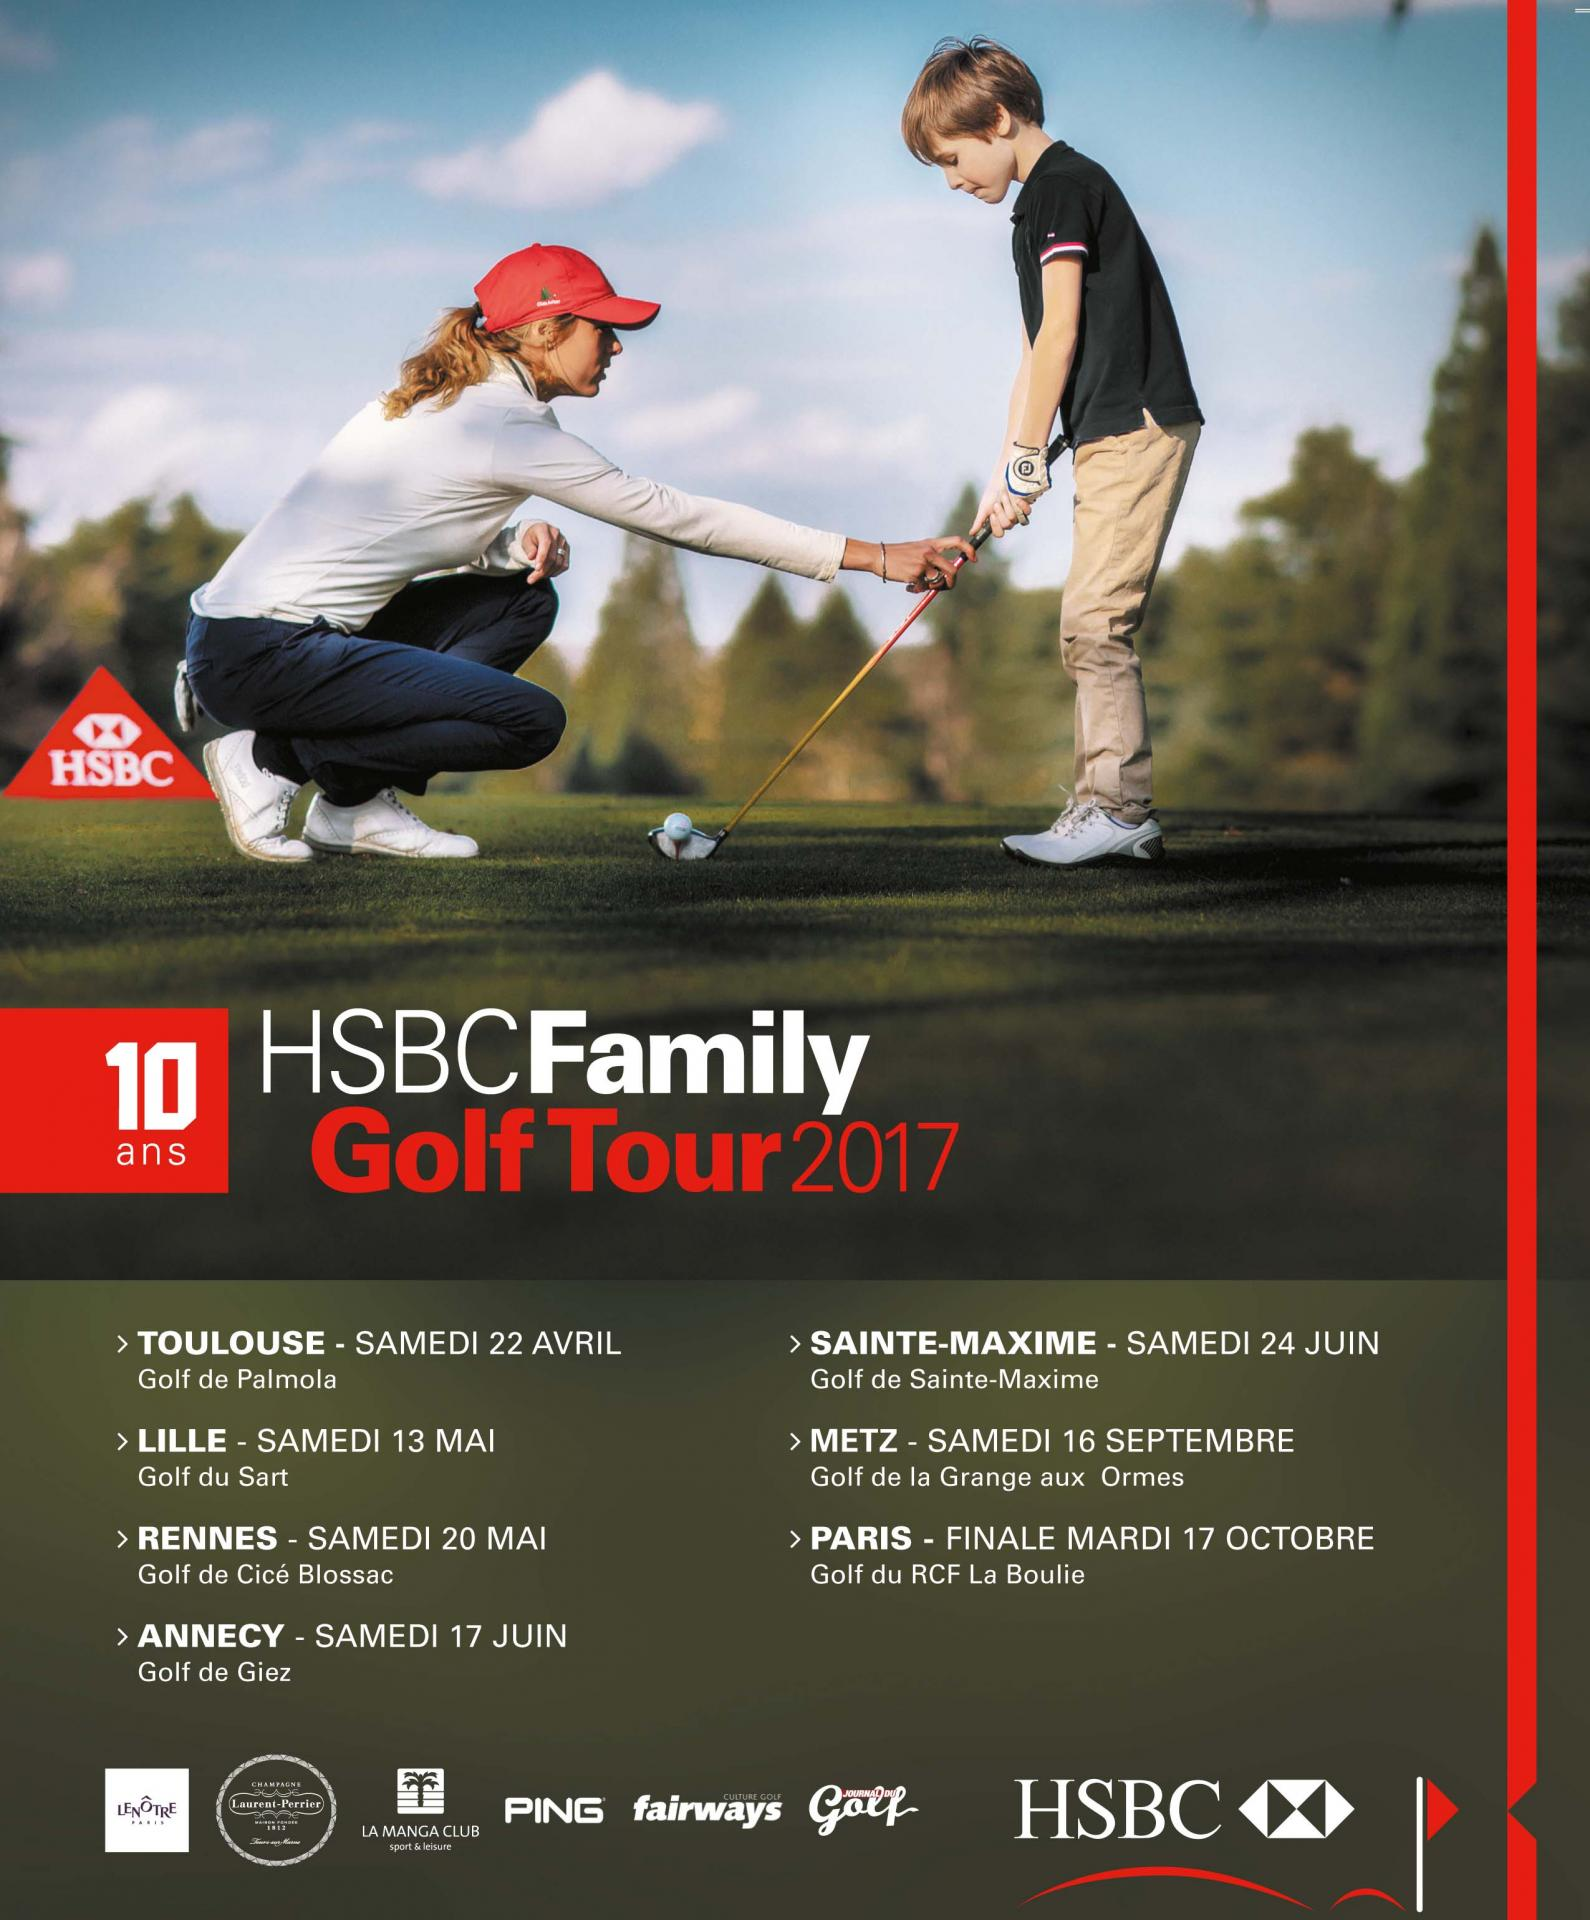 Hsbc golf family tour 2017